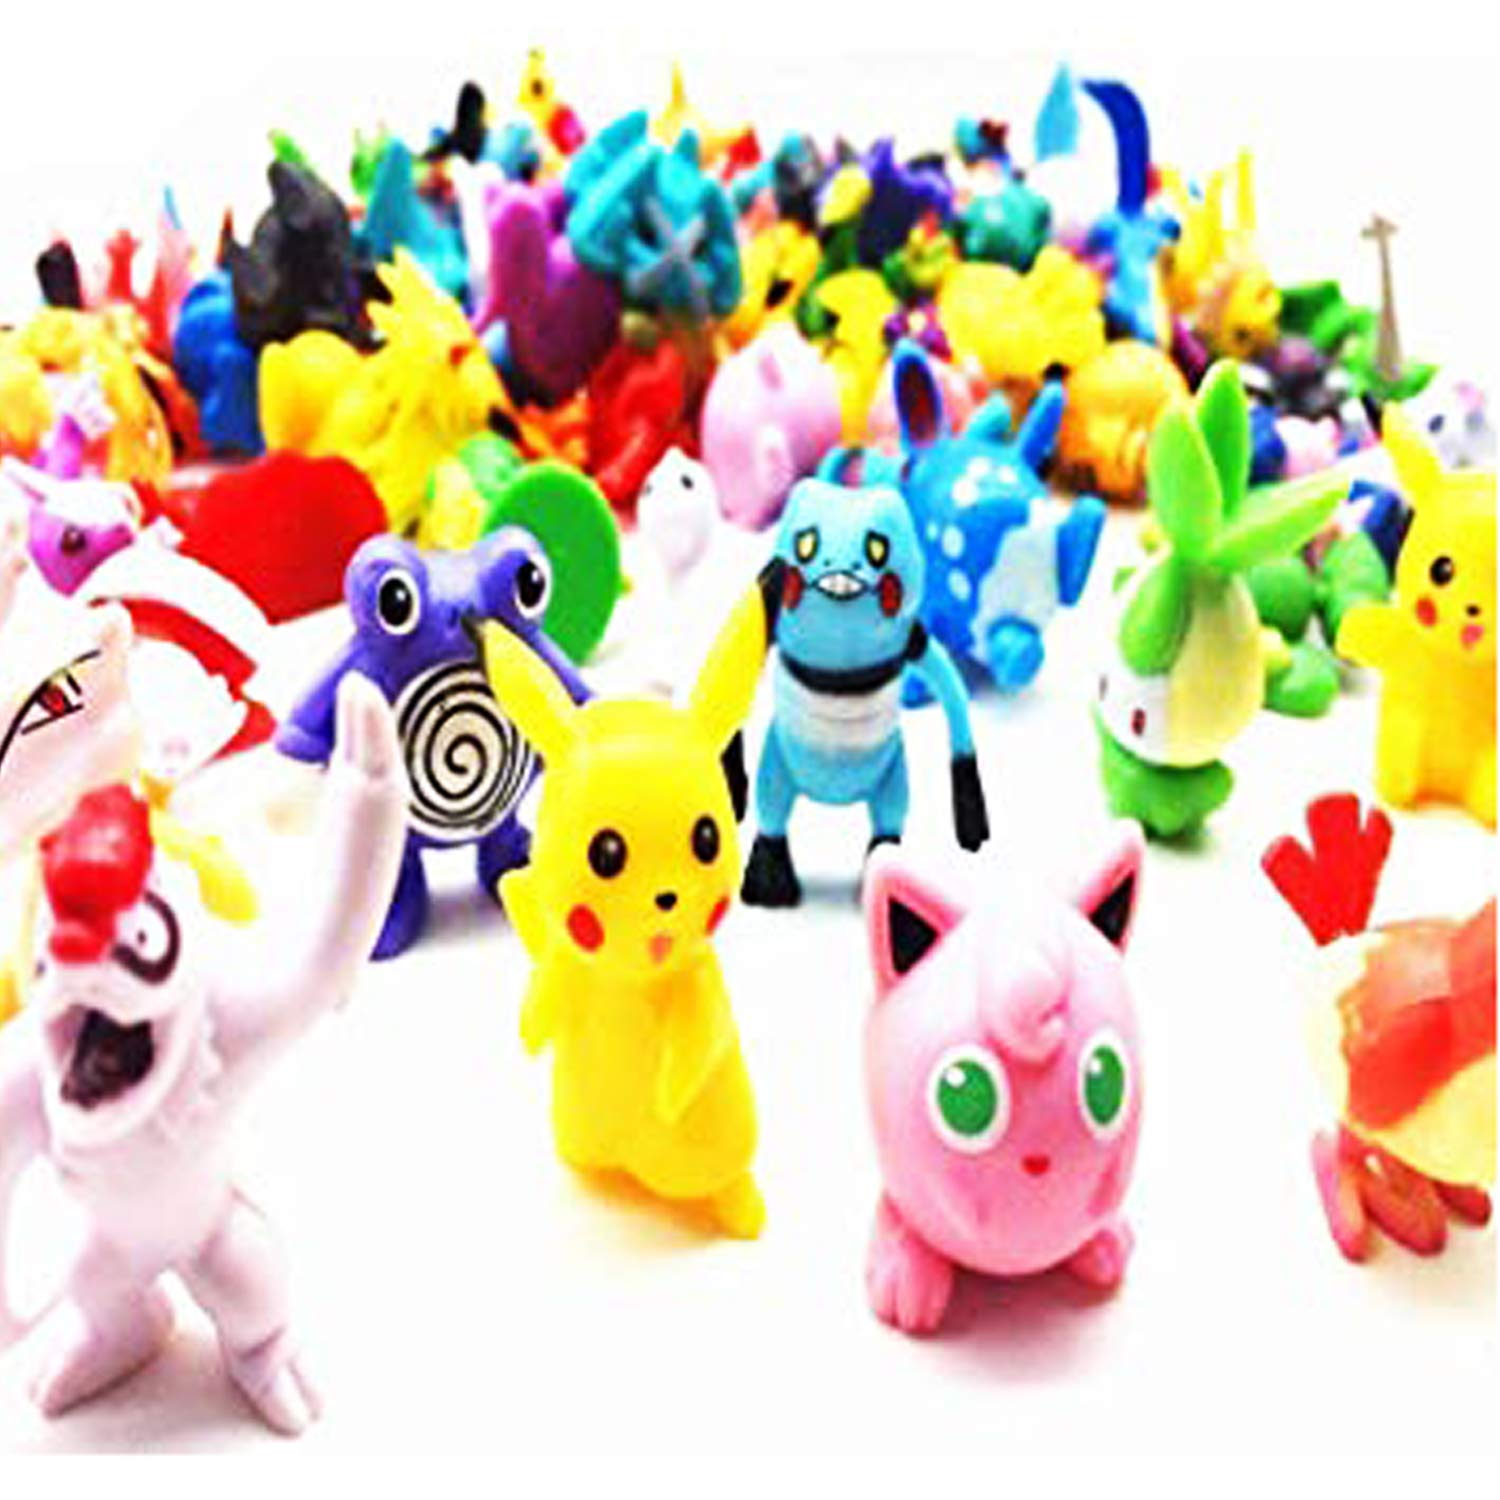 Jinhuamike Pikachu Figures Random, Pikachu Mini Toy Collection Set Pikachu Go Monster Gift - 72 Pcs by Jinhuamike